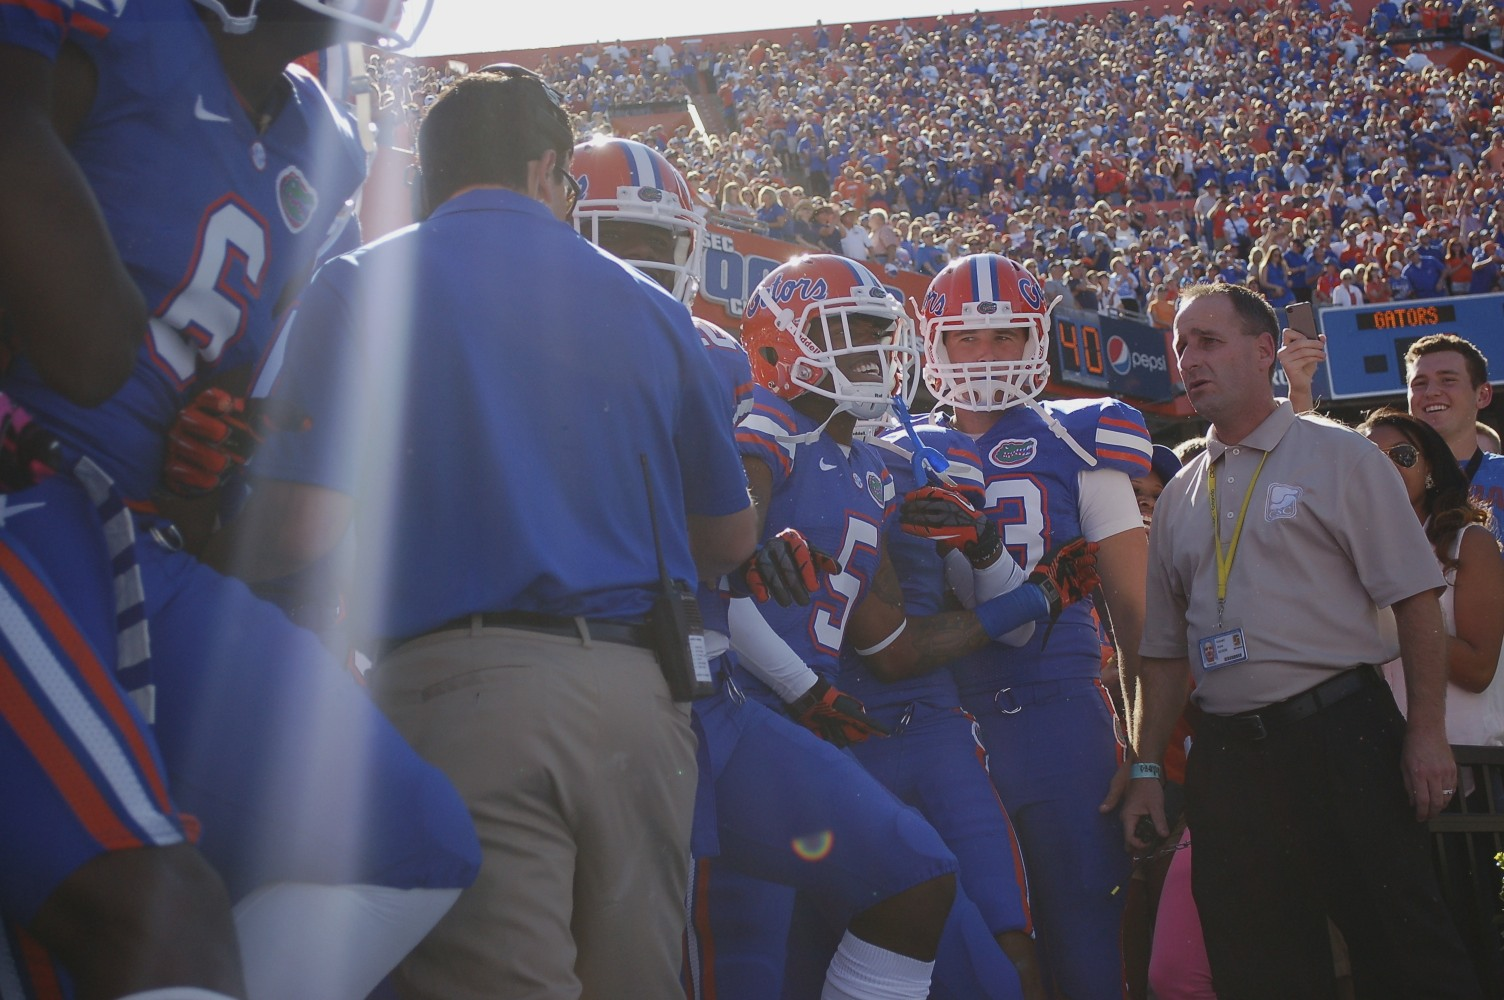 The Gators could hardly be contained before running out on the field to take on the South Carolina Gamecocks Saturday afternoon.